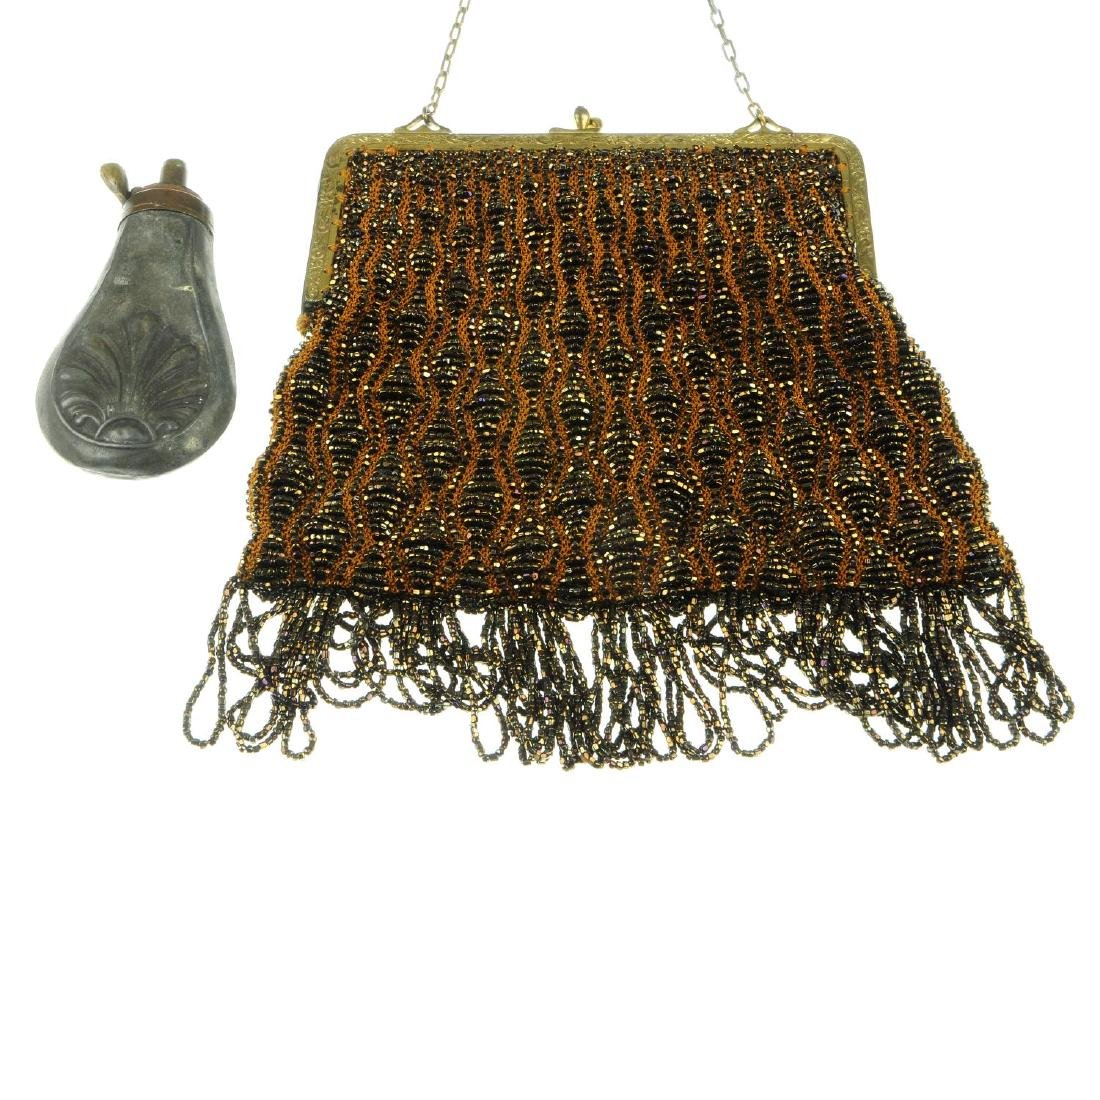 A cut steel evening bag and a gun powder flask. The bag